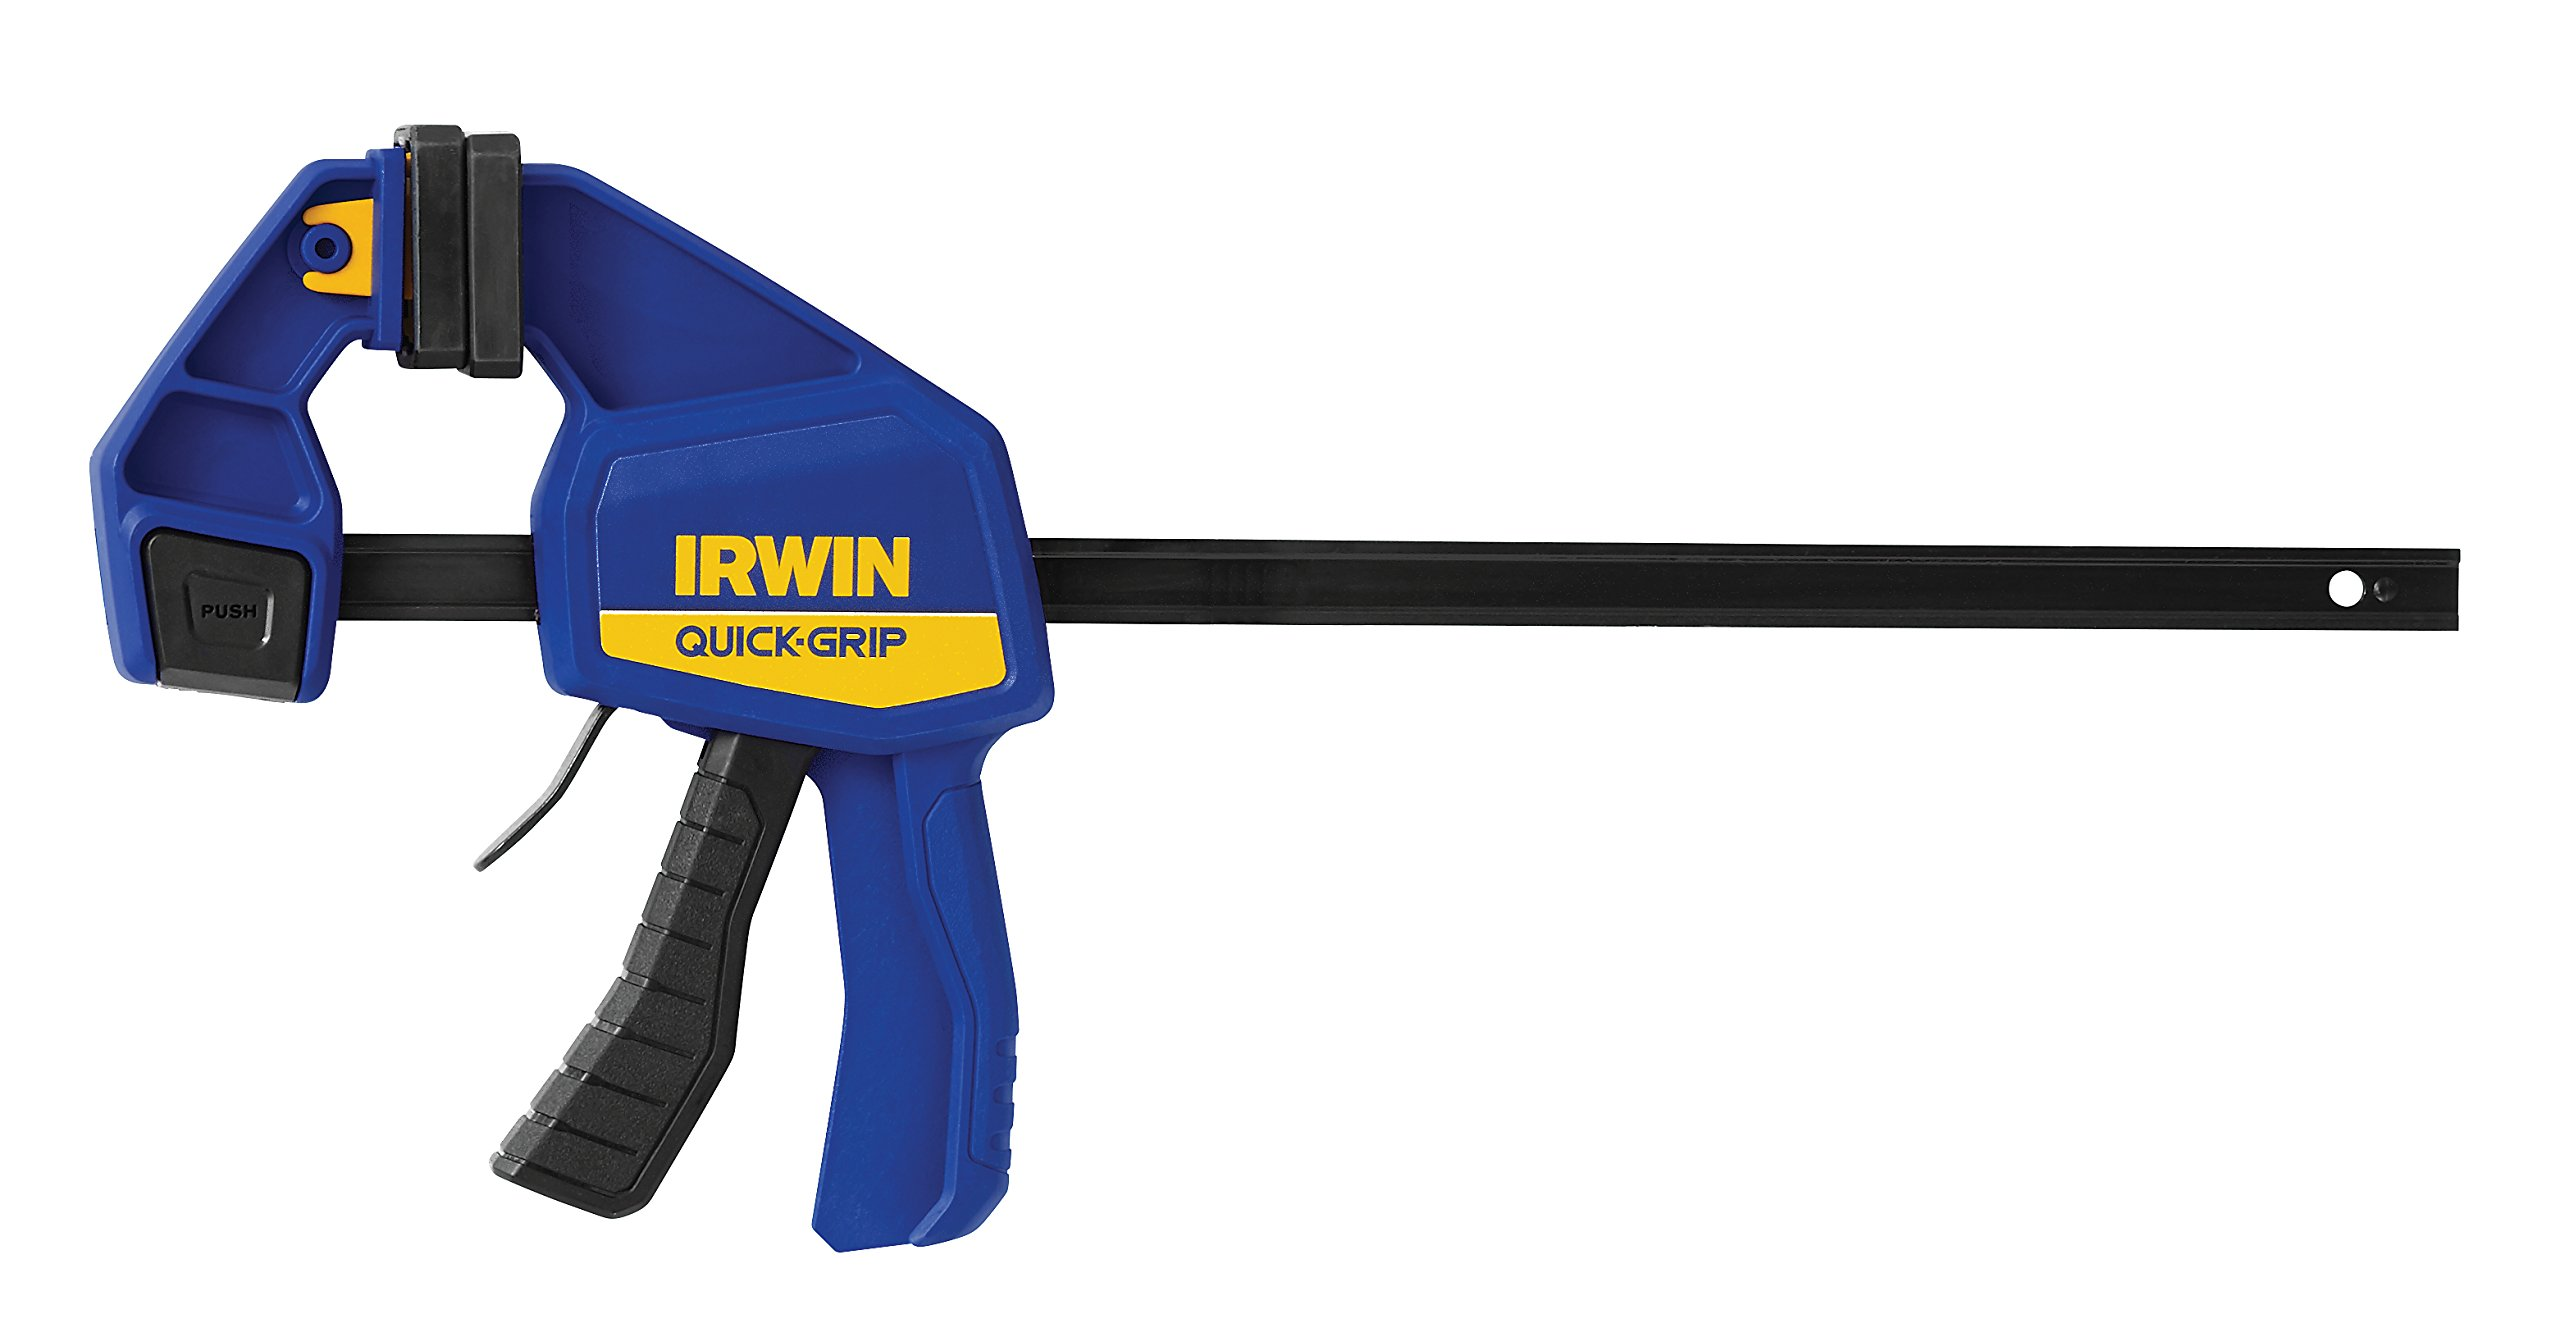 IRWINQUICK-GRIPOne-Handed Bar Clamp, Medium-Duty, 12'', 1964718